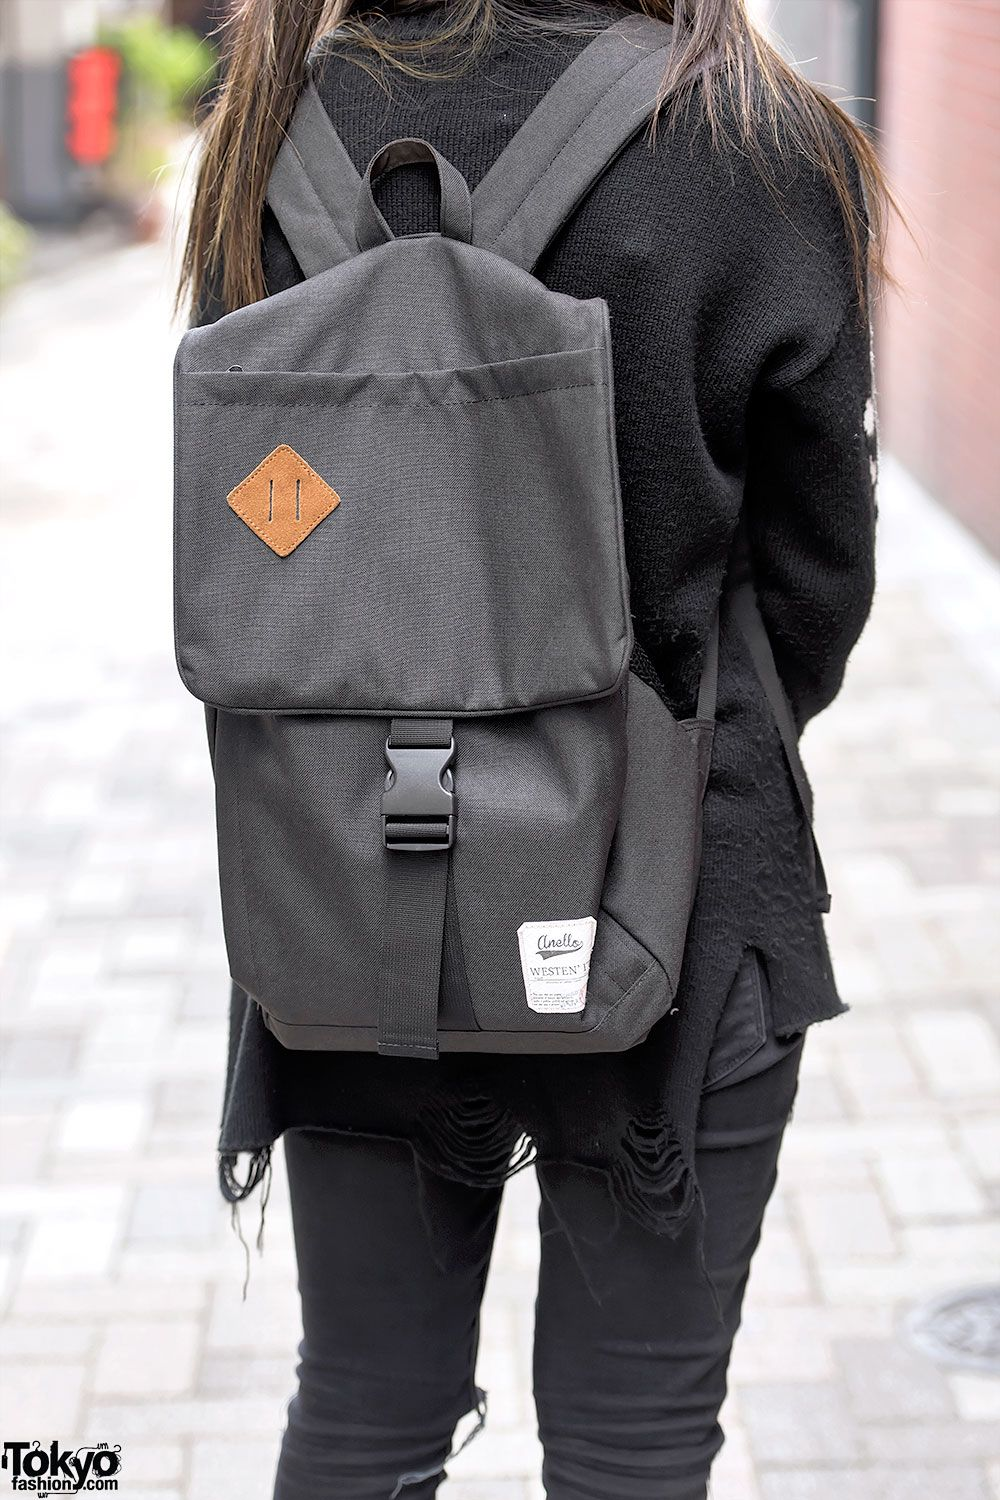 Anello Backpack In Harajuku Fashion Style 2018 Pinterest Dr Kevin Men Sneaker 13314 Black Bags Beauty Outfit World Street